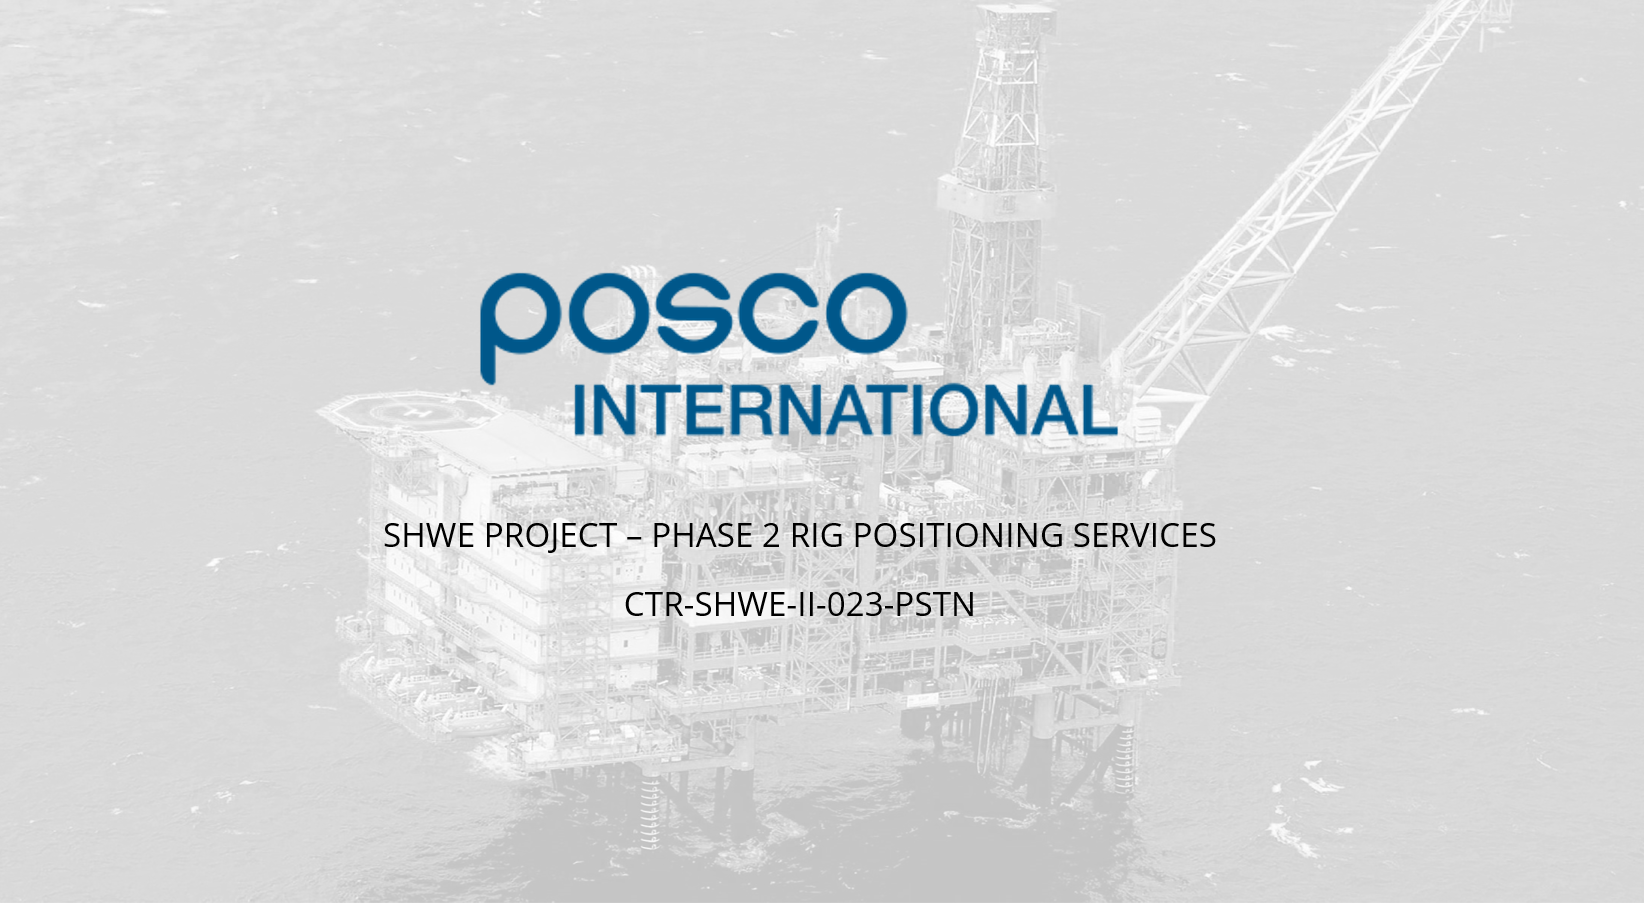 SHWE Project – Phase 2 Rig Positioning Service for POSCO International